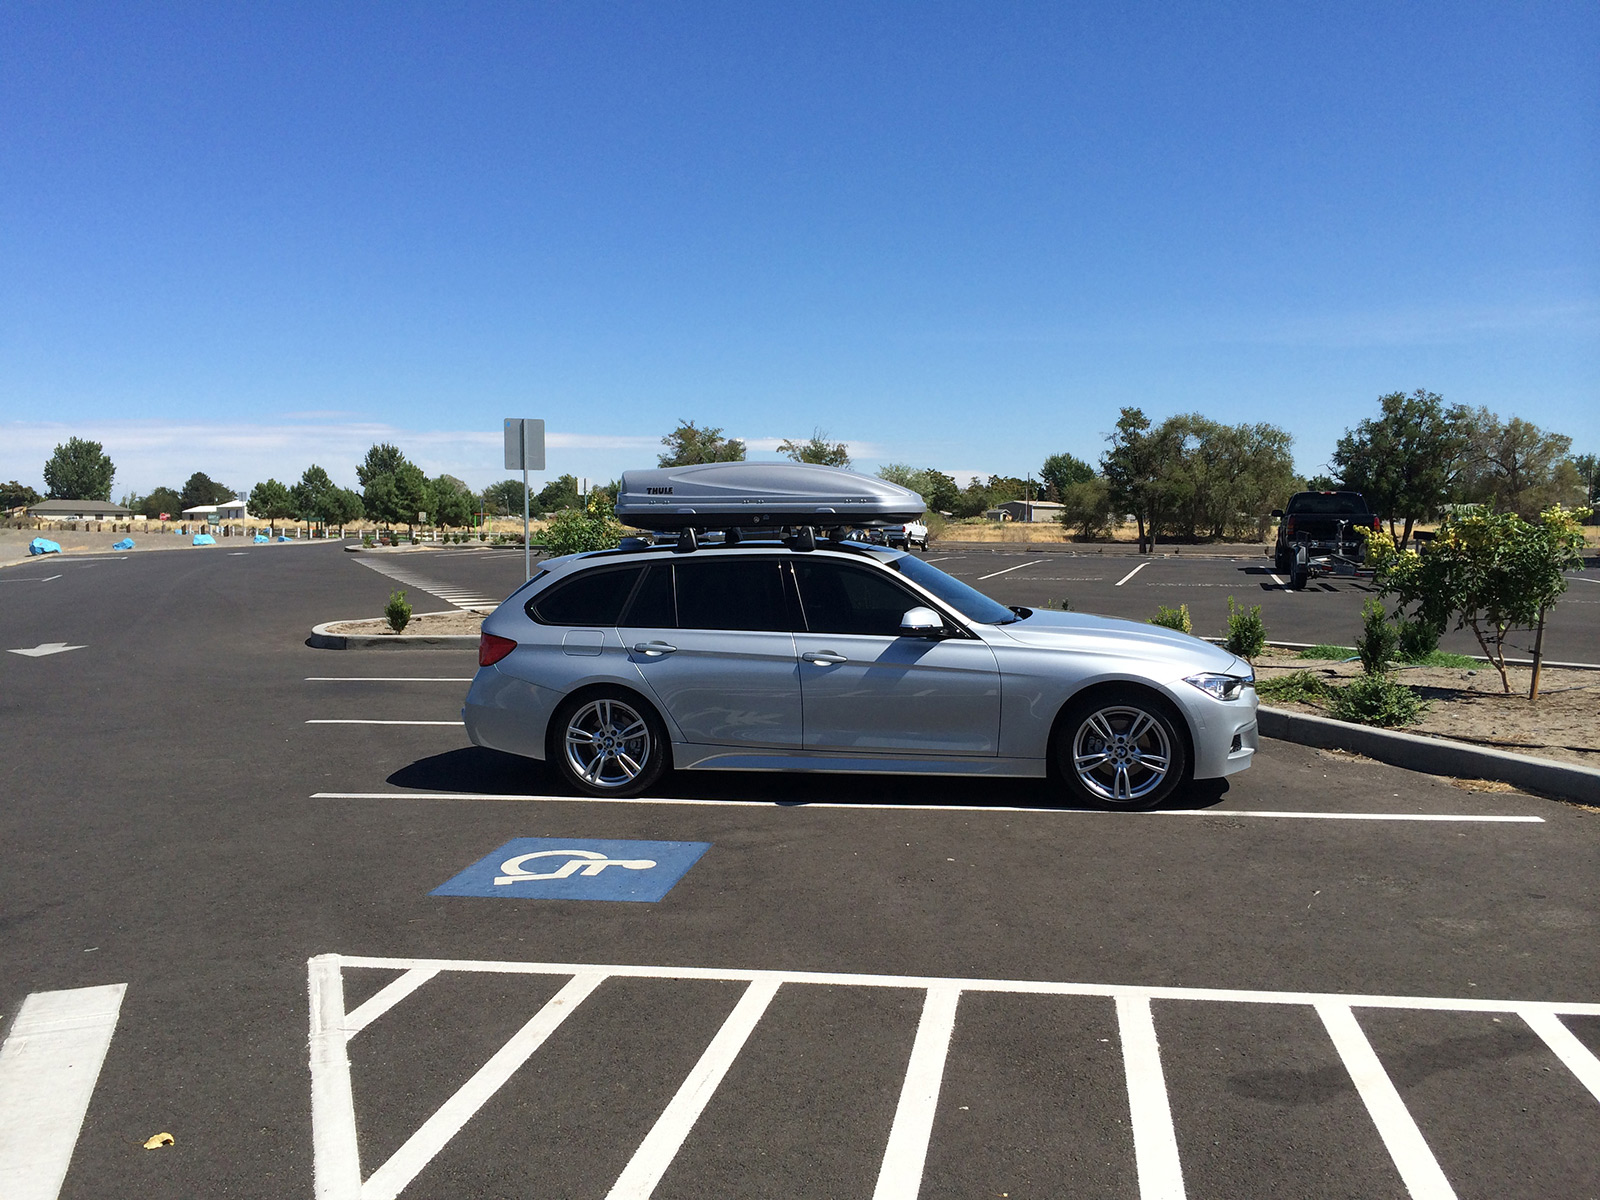 Bmw F31 Thule Roof Bars 2013 Bmw X3 With Thule 460r Podium